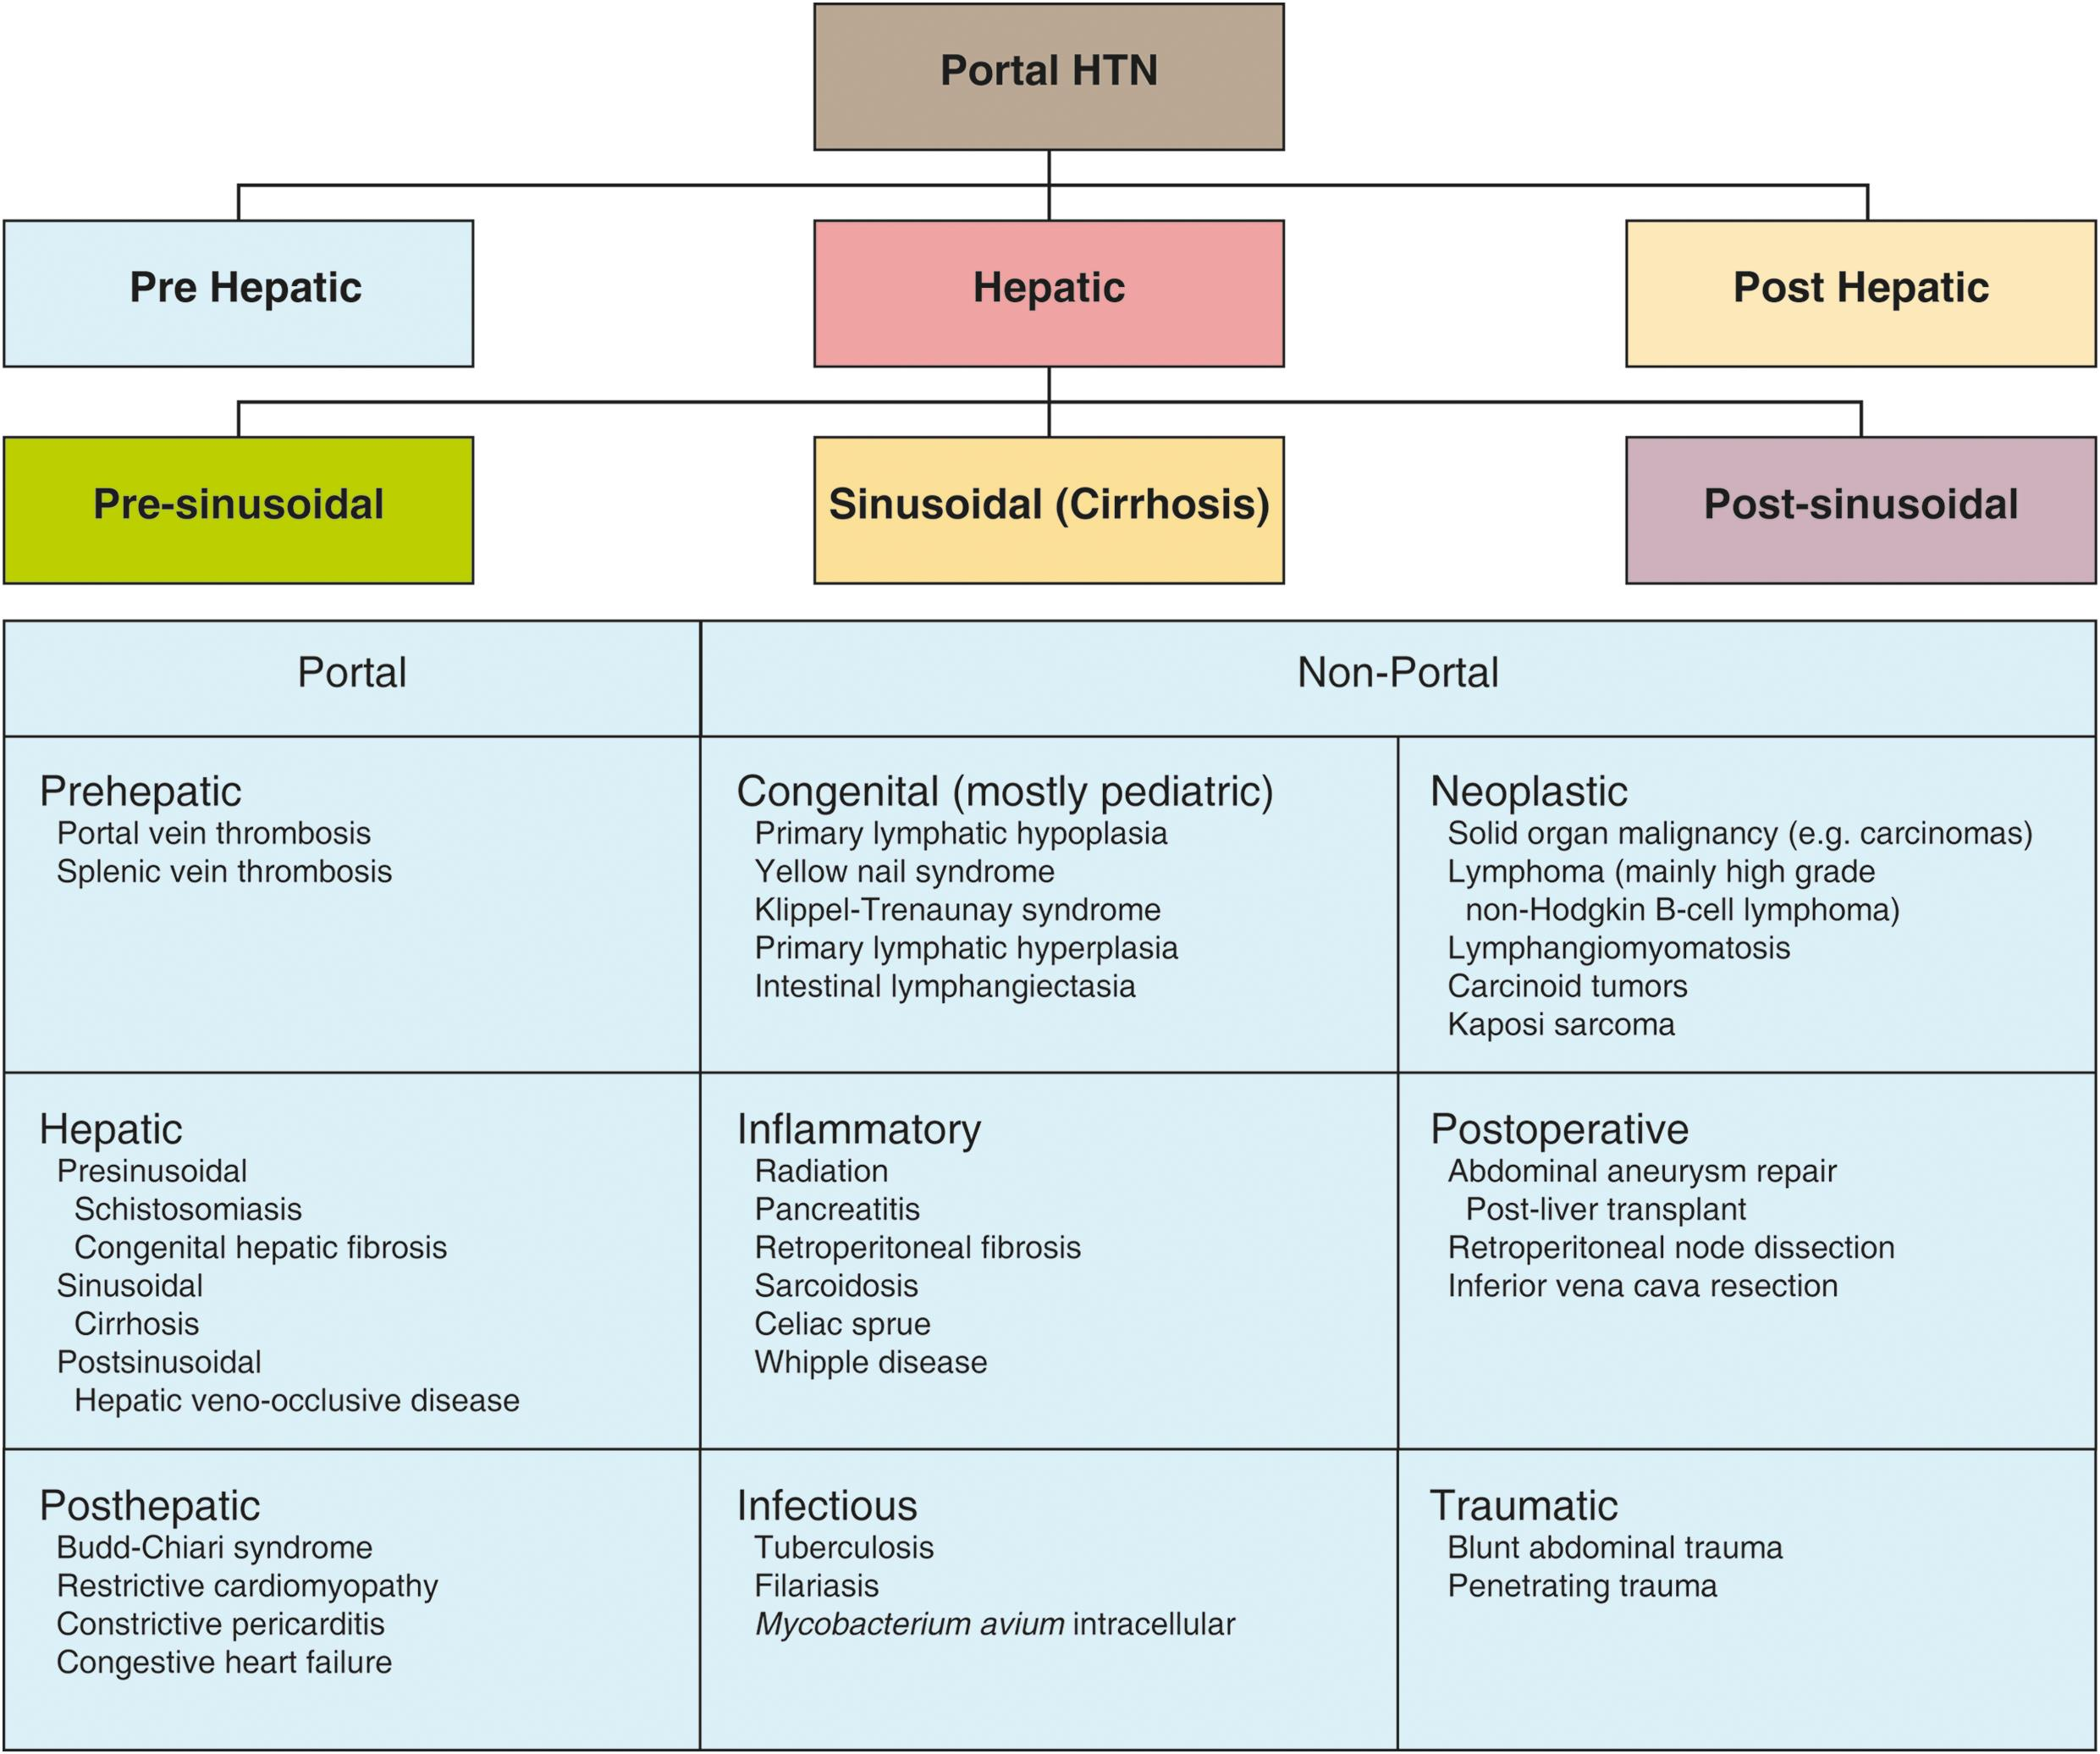 Etiological classification along with differential diagnosis of various causes of portal hypertension based on the site of resistance to the portal blood flow (portal and non-portal hypertensive causes).